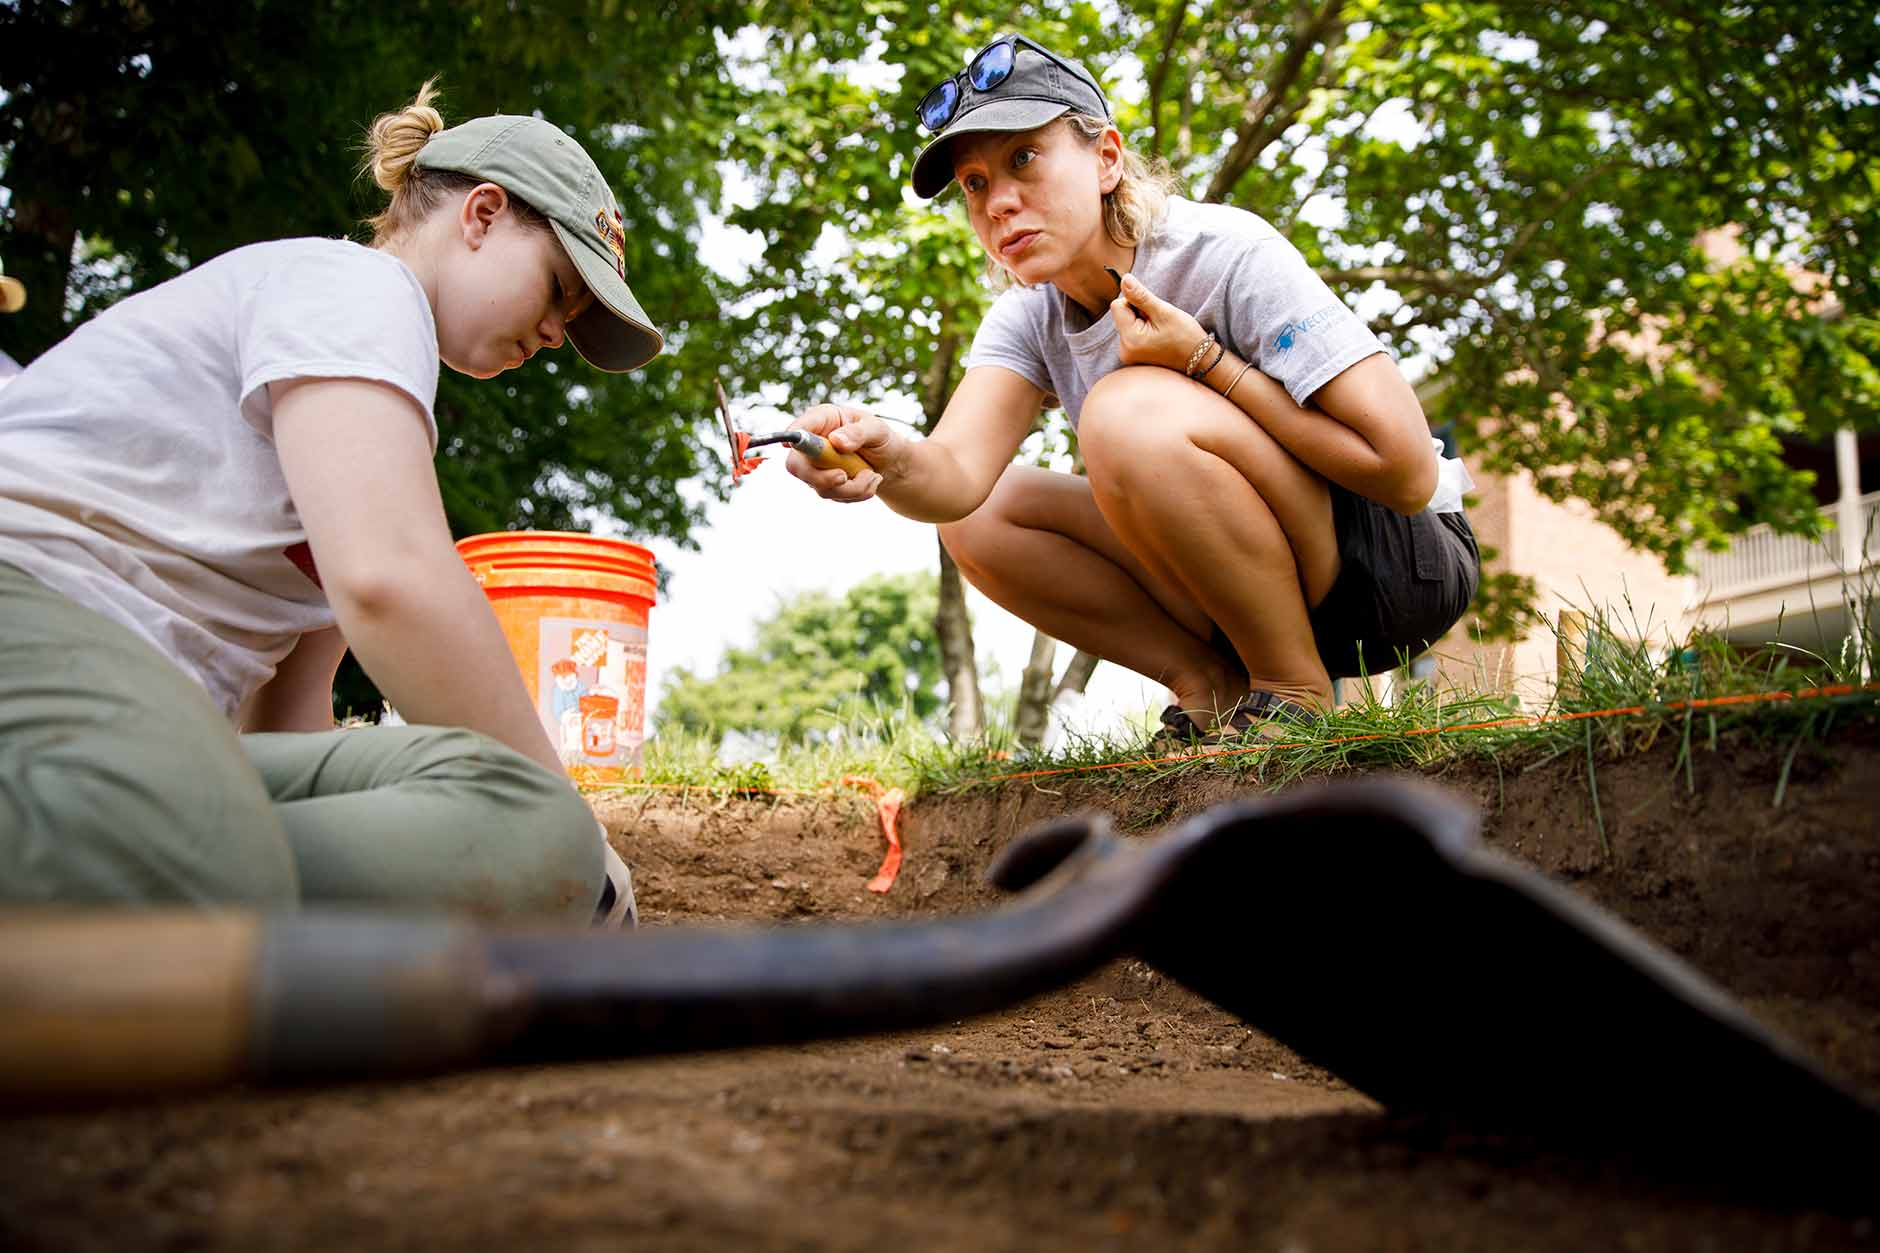 Elizabeth Watts Malouchos, right, a research scientist at the Indiana University Glenn A. Black Laboratory of Archaeology, works with IU sophomore Lauren Schumacher during an archaeological project at Wylie House in Bloomington on Thursday, June 7, 2018. During the four week field school, students will learn archaeological field methods from Glenn A. Black Laboratory of Archaeology researchers while searching for two buried garden facilities dating to 1859. (James Brosher/IU Communications)